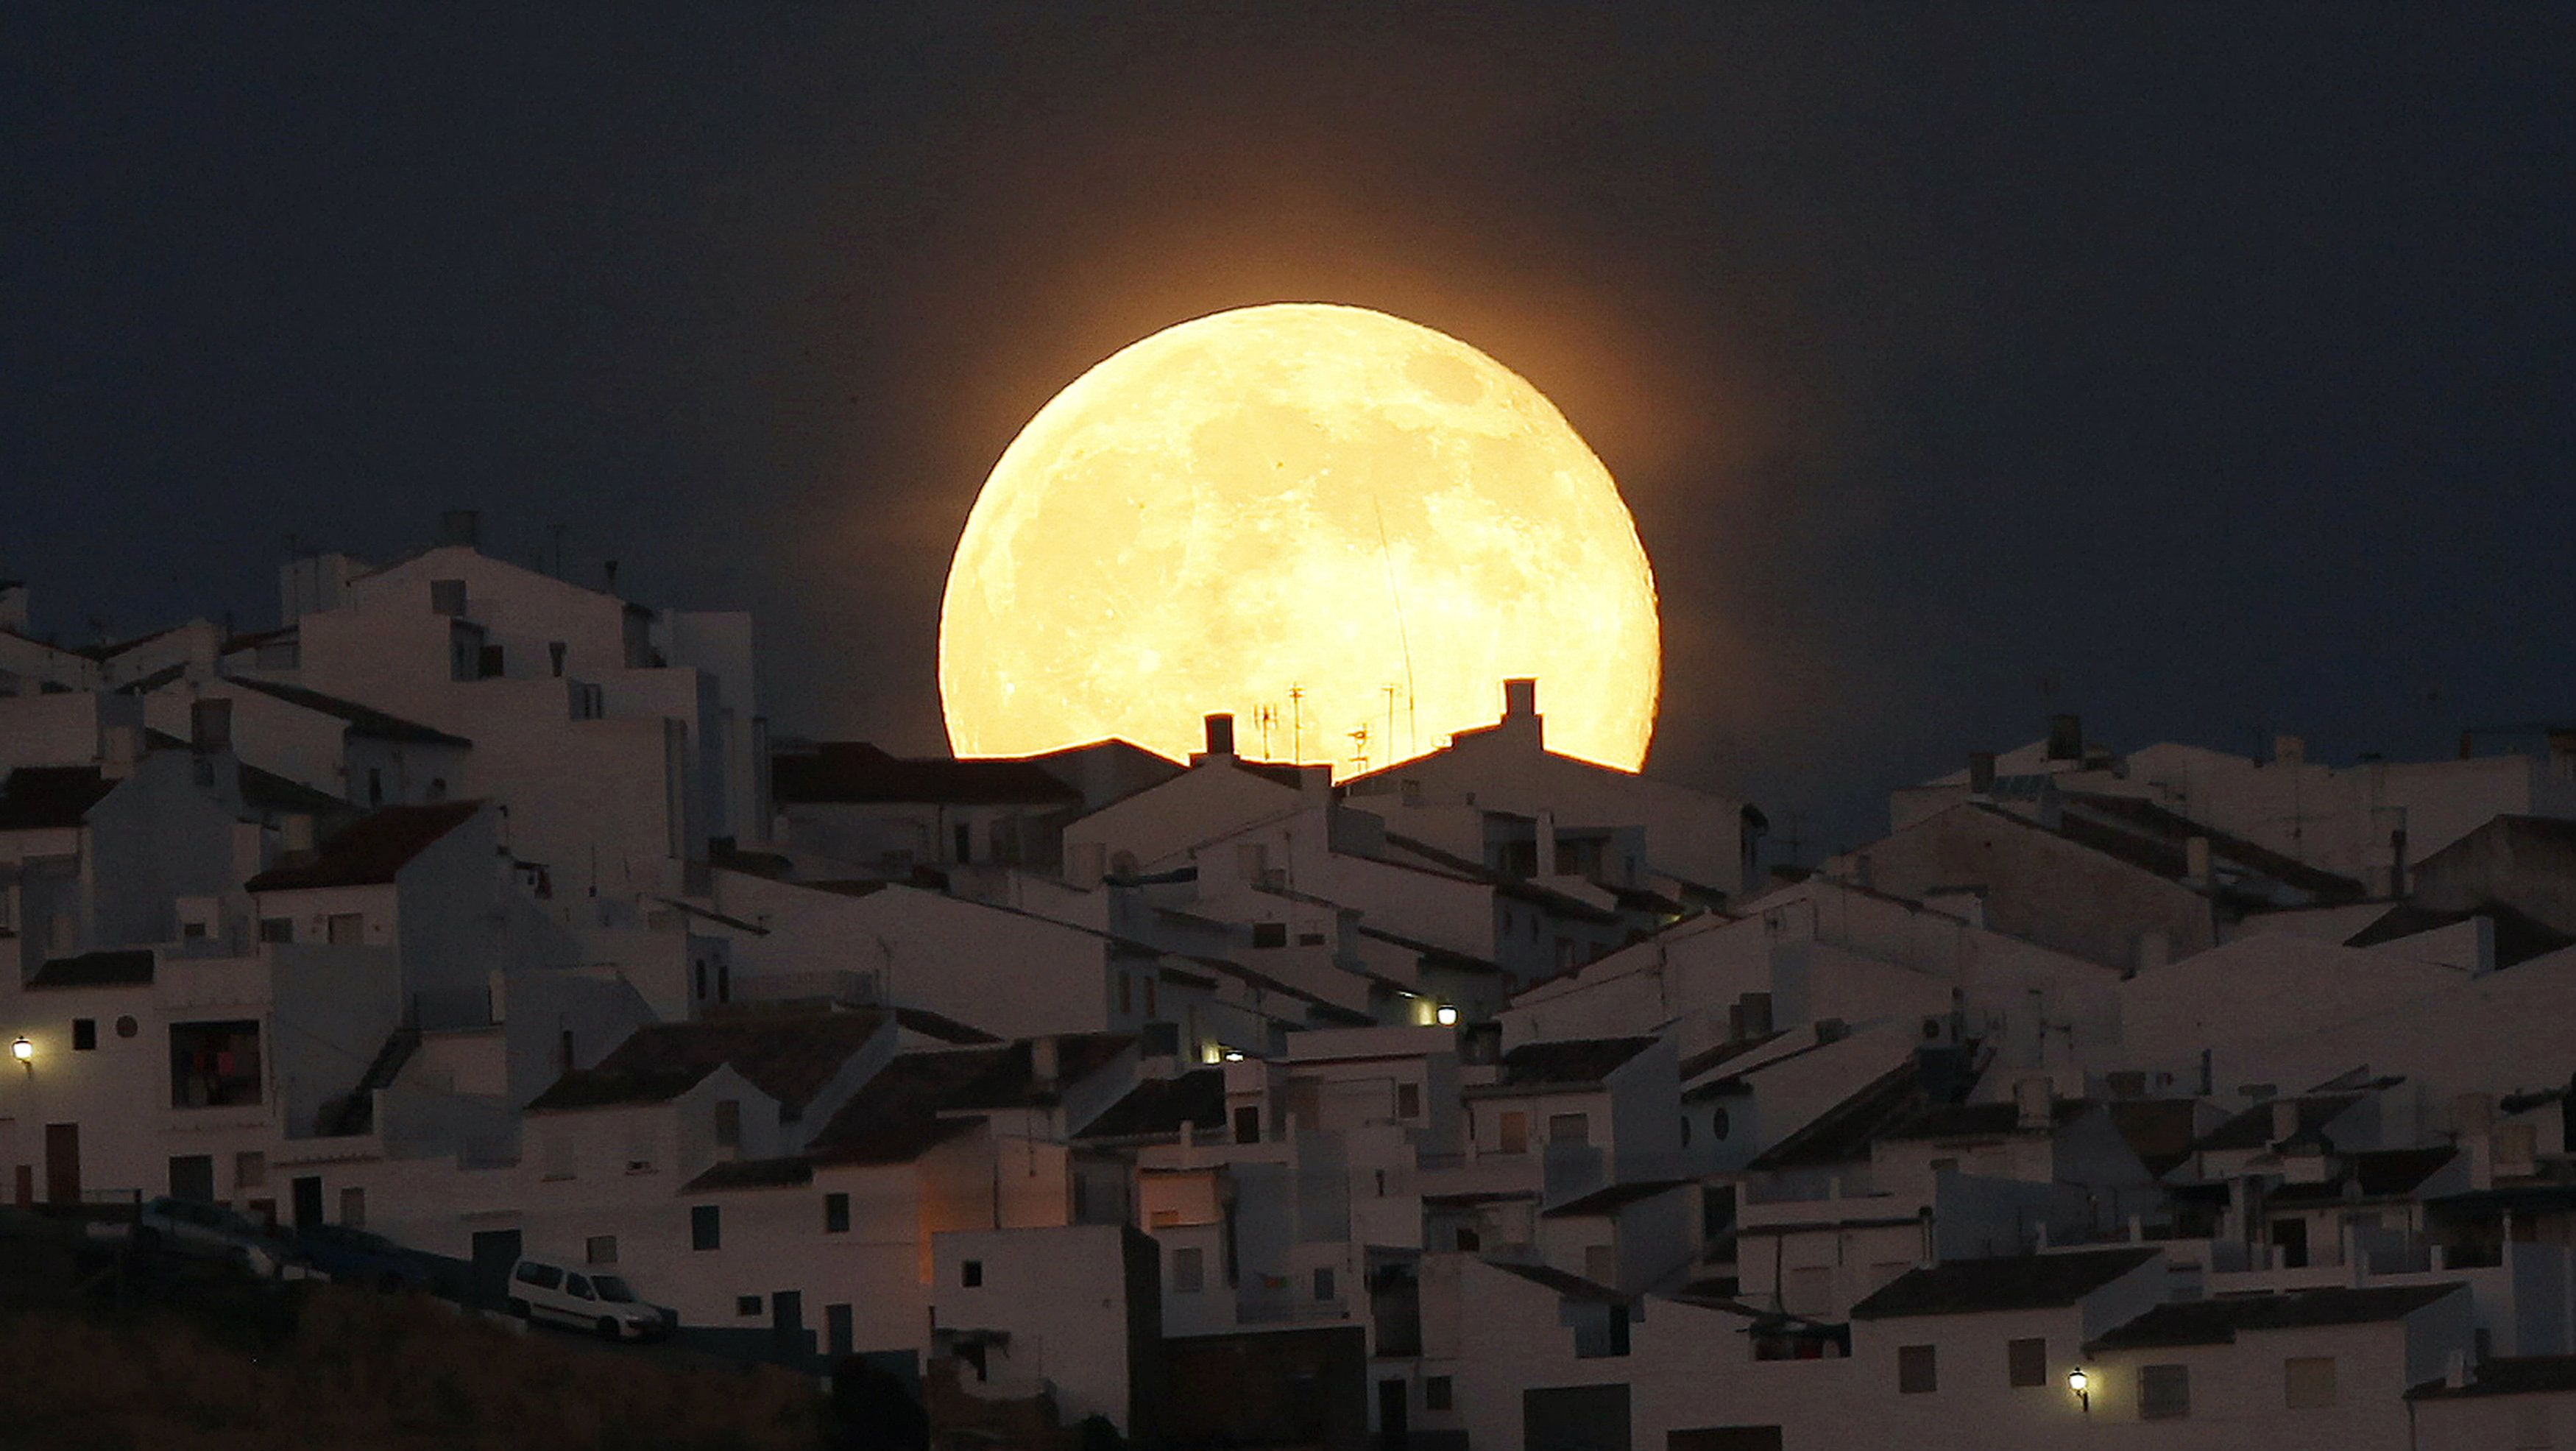 The Supermoon rises over houses in Olvera, in a southern Spanish range of Cadiz, Jul 12, 2014. Occurring when a full moon or new moon coincides with a closest proceed a moon creates to a Earth, a Supermoon formula in a larger-than-usual coming of a lunar disk.